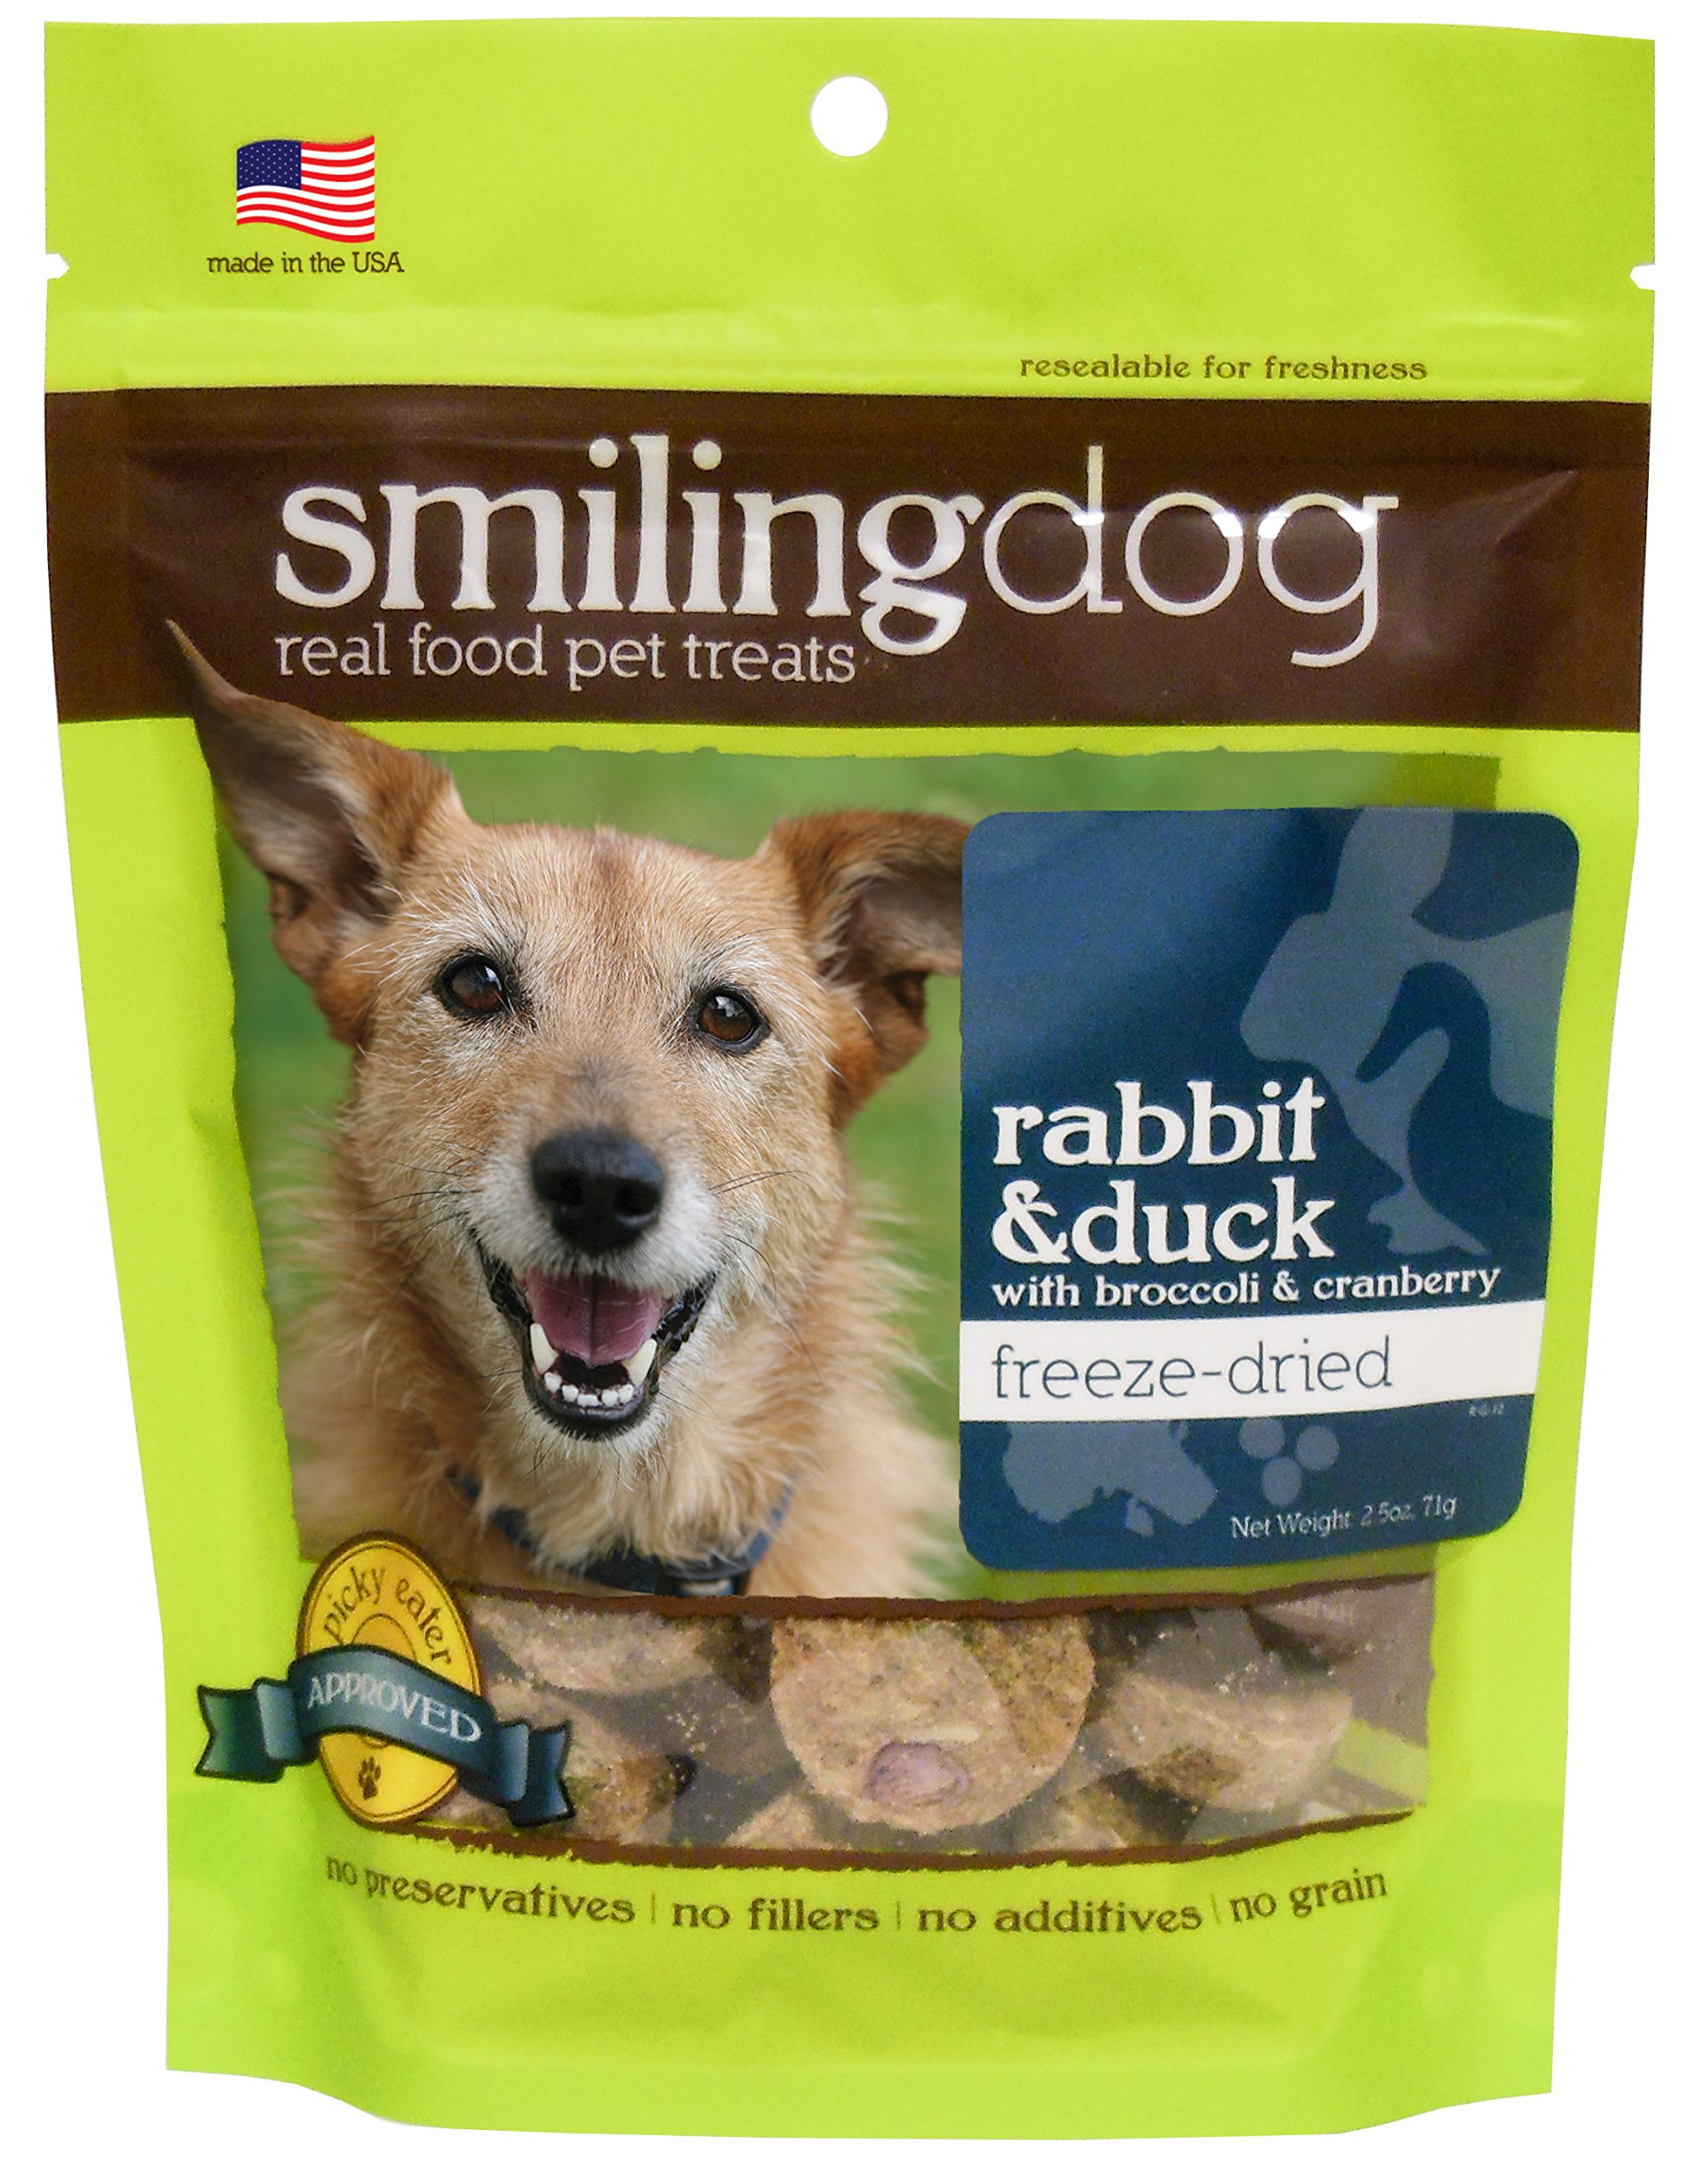 Herbsmith Smiling Dog Treats – Freeze Dried Raw Rabbit & Duck – Grocery-Grade Fruits + Veggies – Gluten + Grain Free – Made in USA – 2.5 Ounce by Herbsmith, Inc. (Image #1)